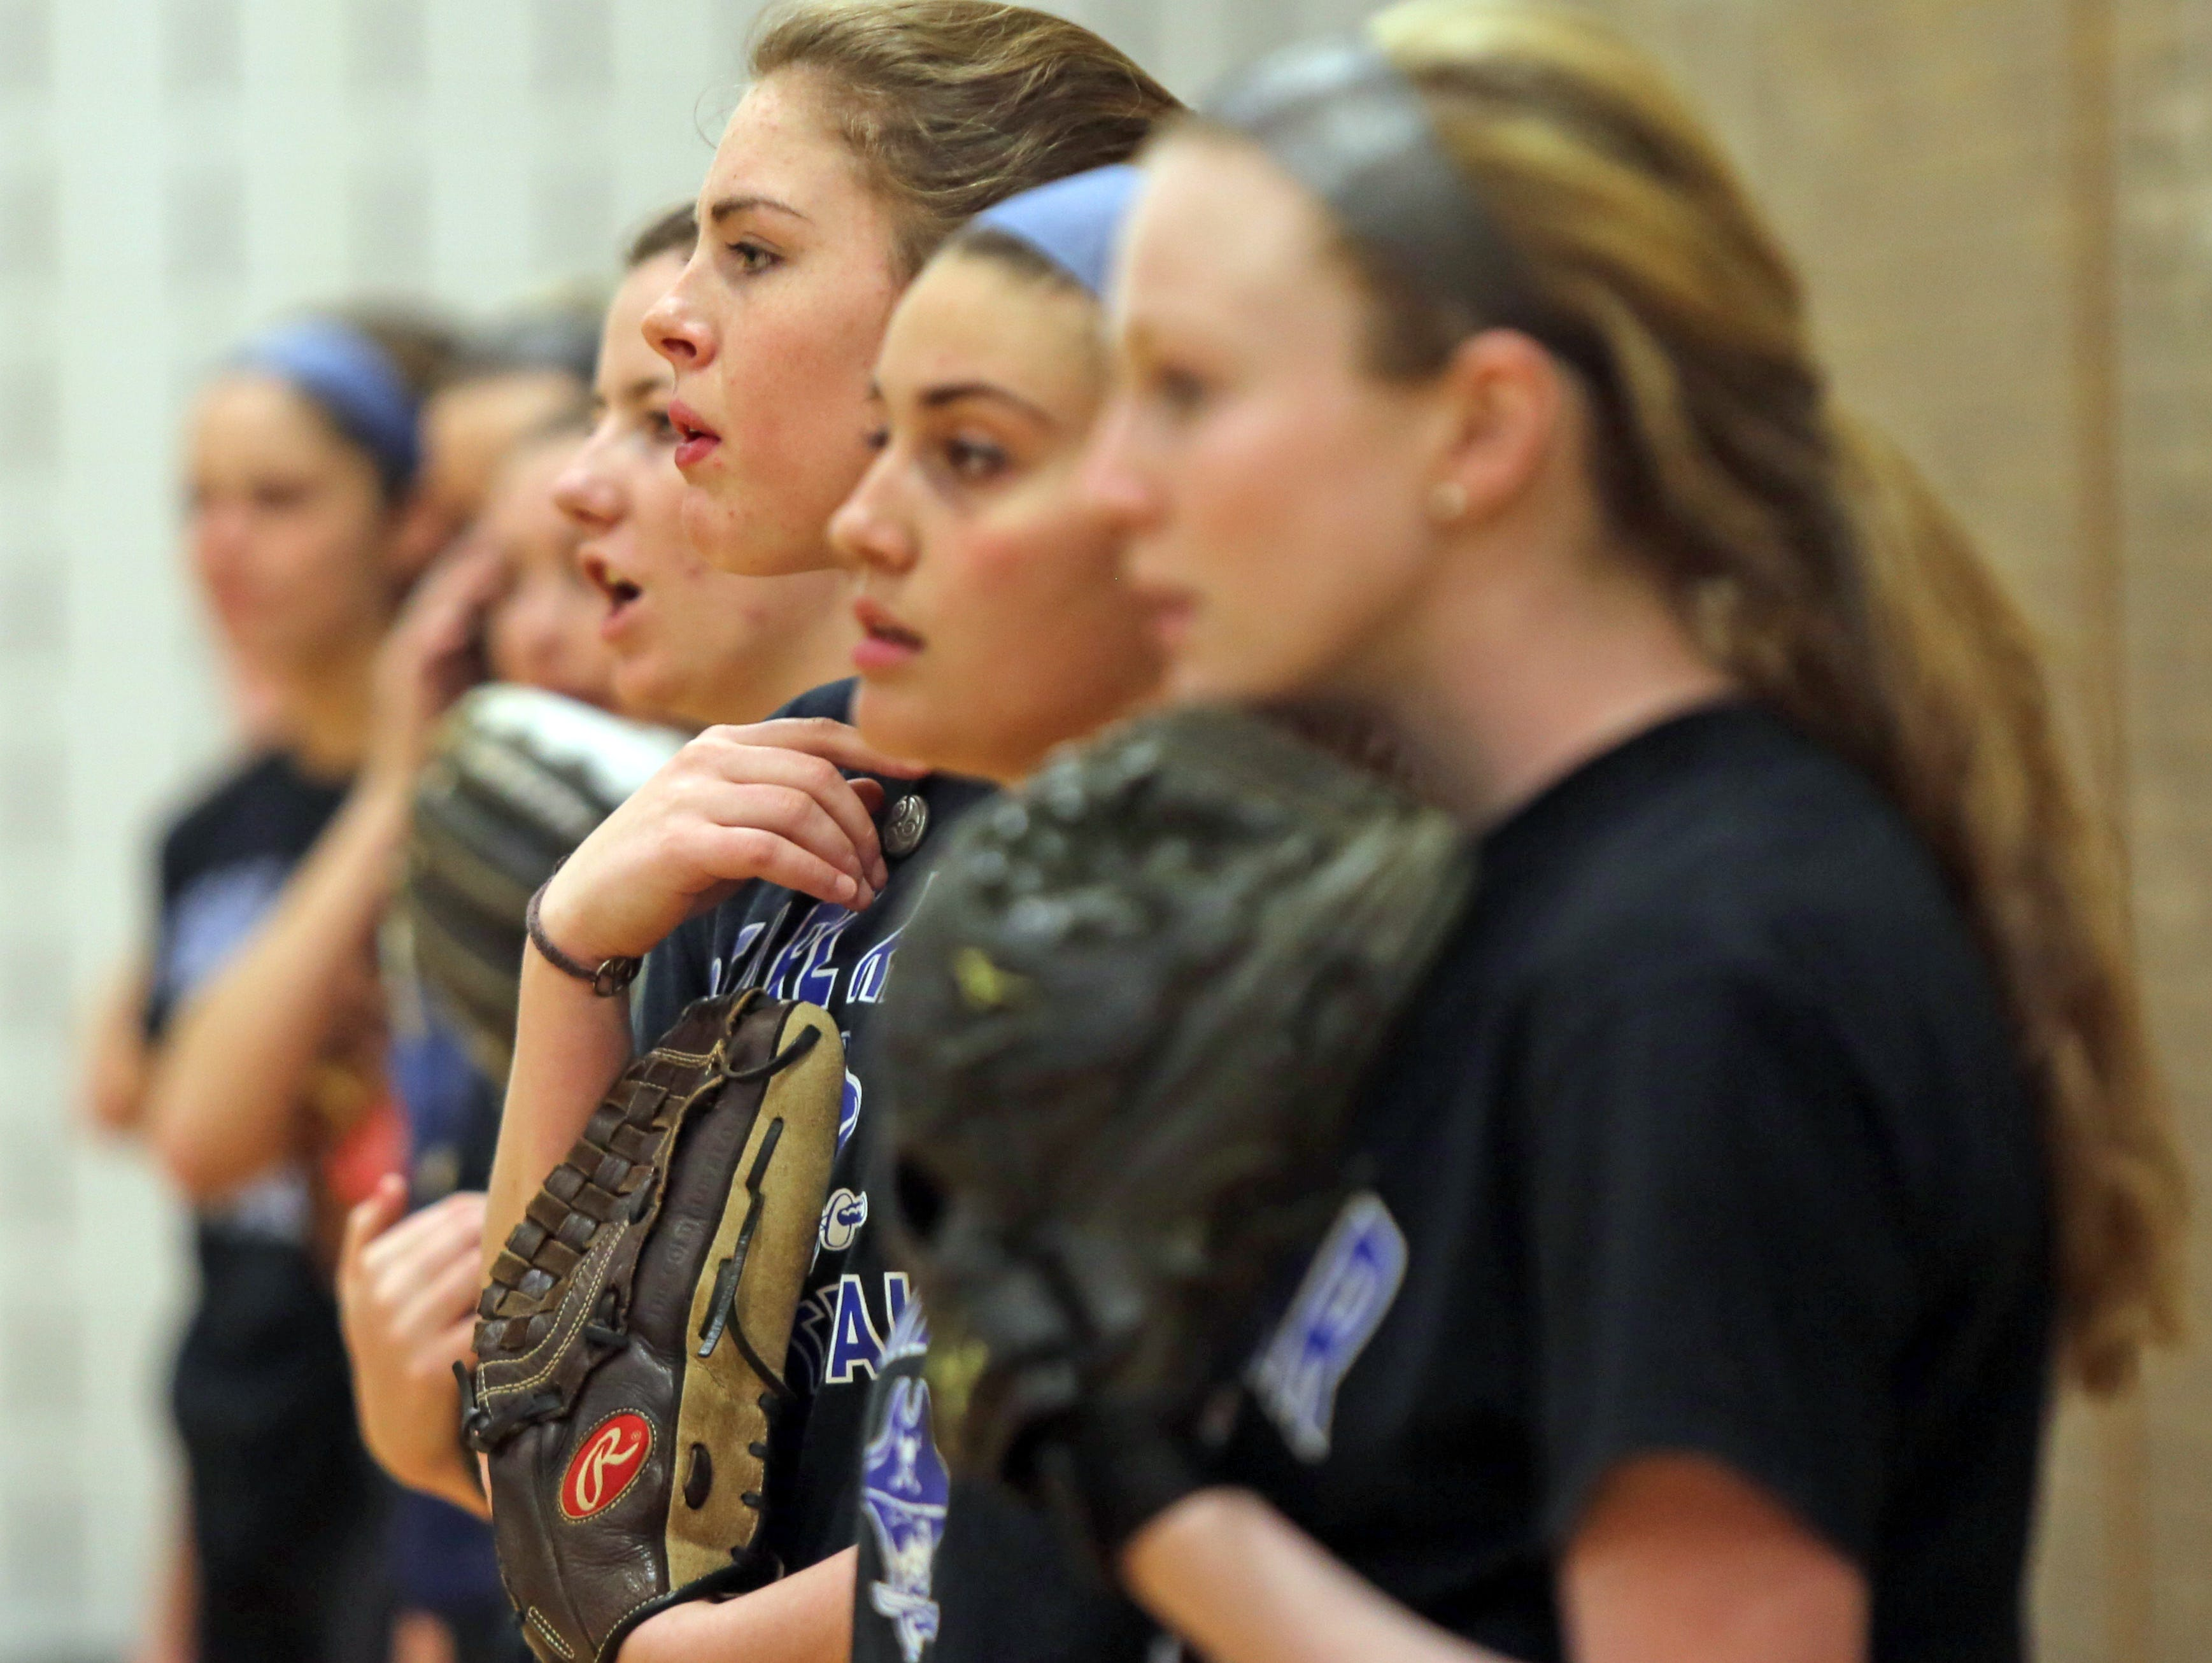 Meagan Woods (near) and her Pearl River softball teammates watch on during an indoors practice at the high school on March 14, 2016.